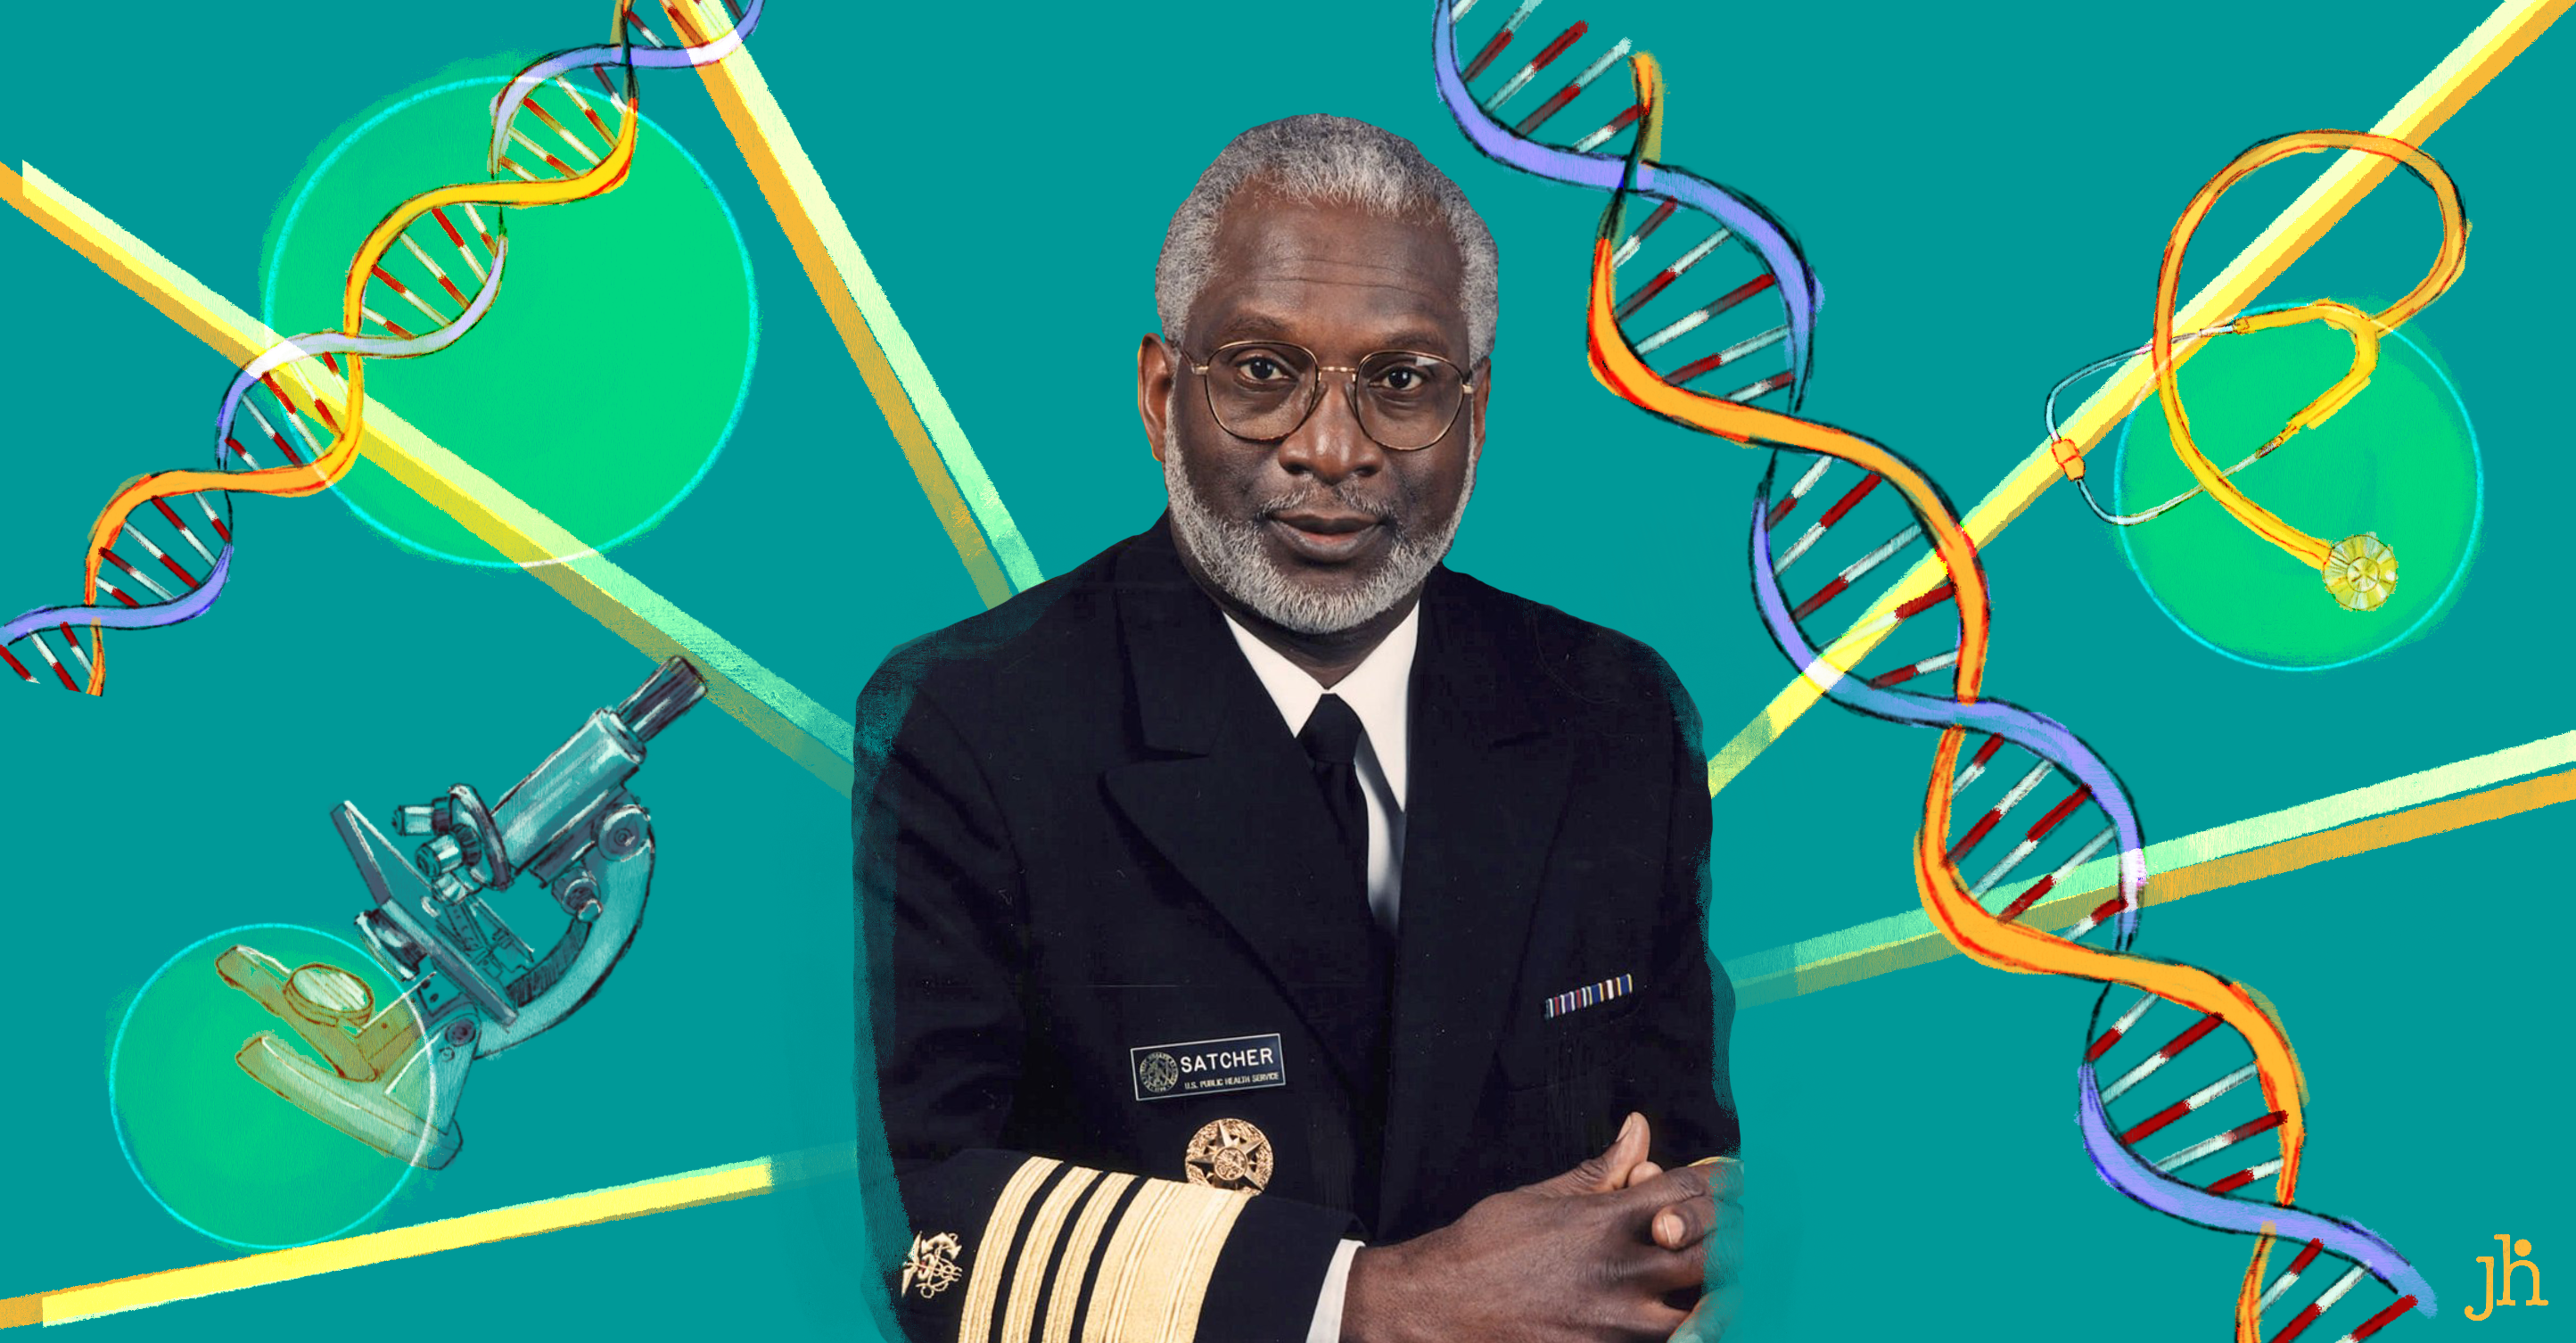 Profile of a Black Man in Science: David Satcher